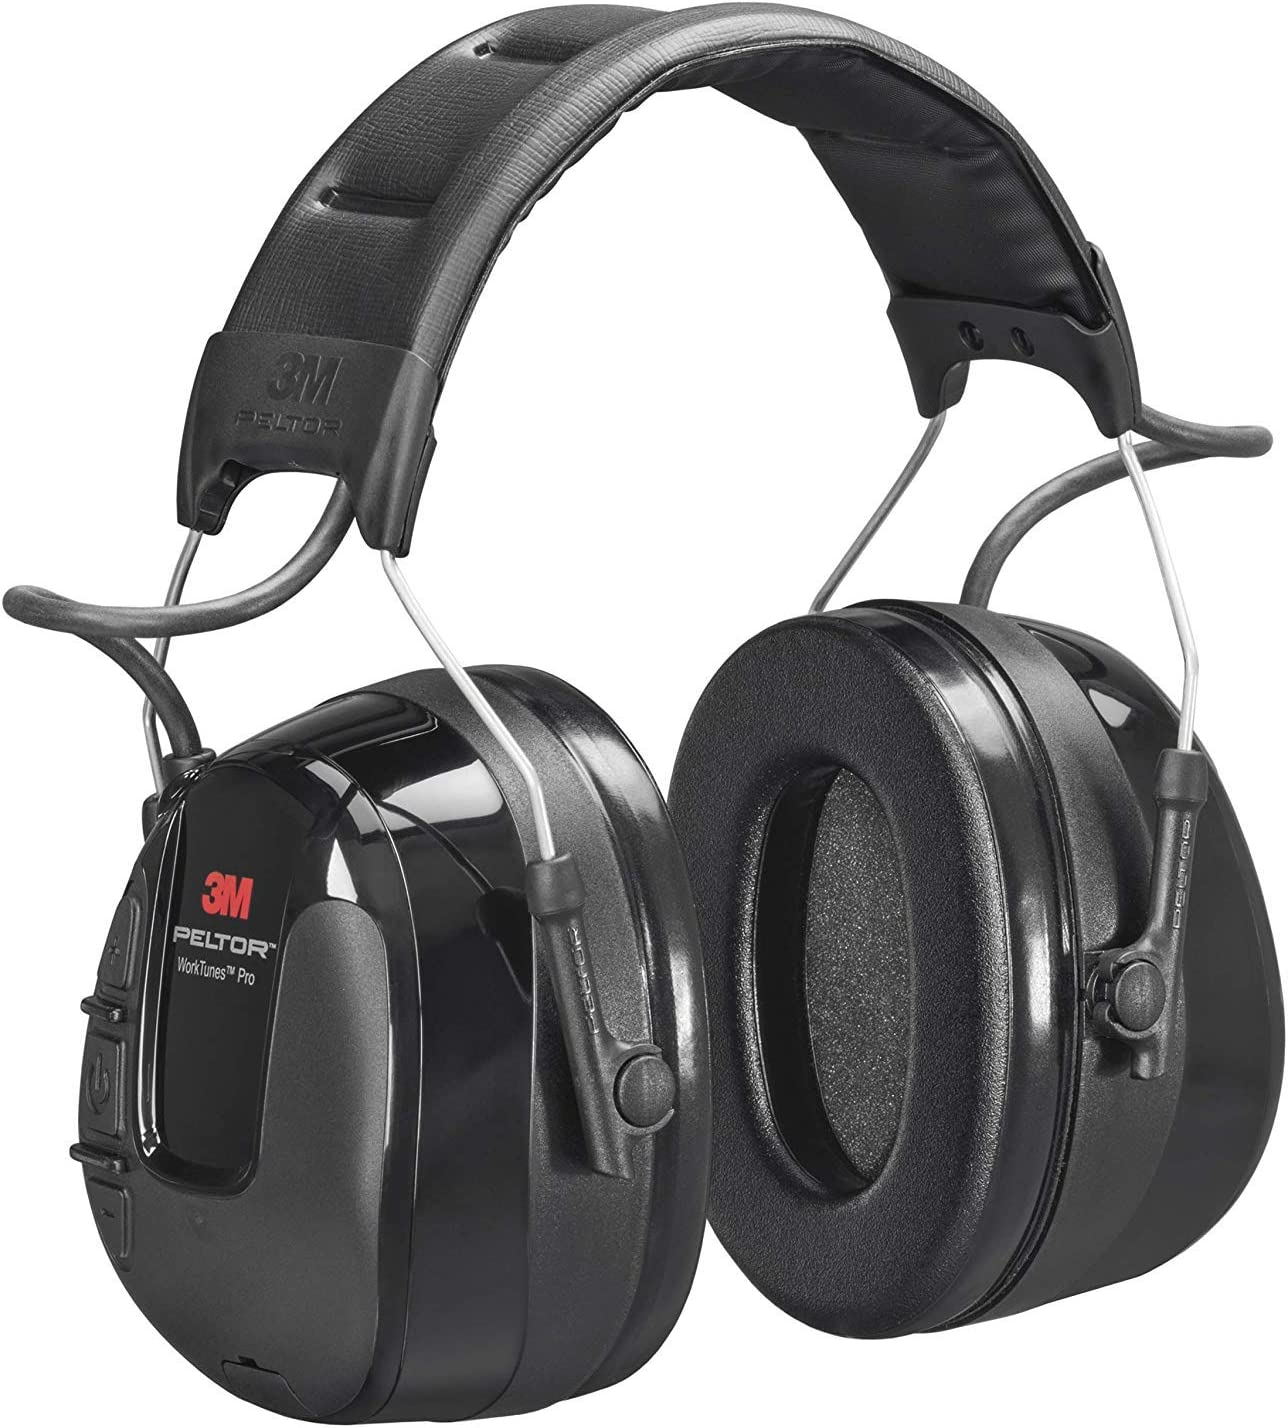 Hearing protection with FM radio function for an improved work experience Battery Powered 32 dB 1x Peltro headset in black 3M Peltor WorkTunes Pro FM Radio Headset Black